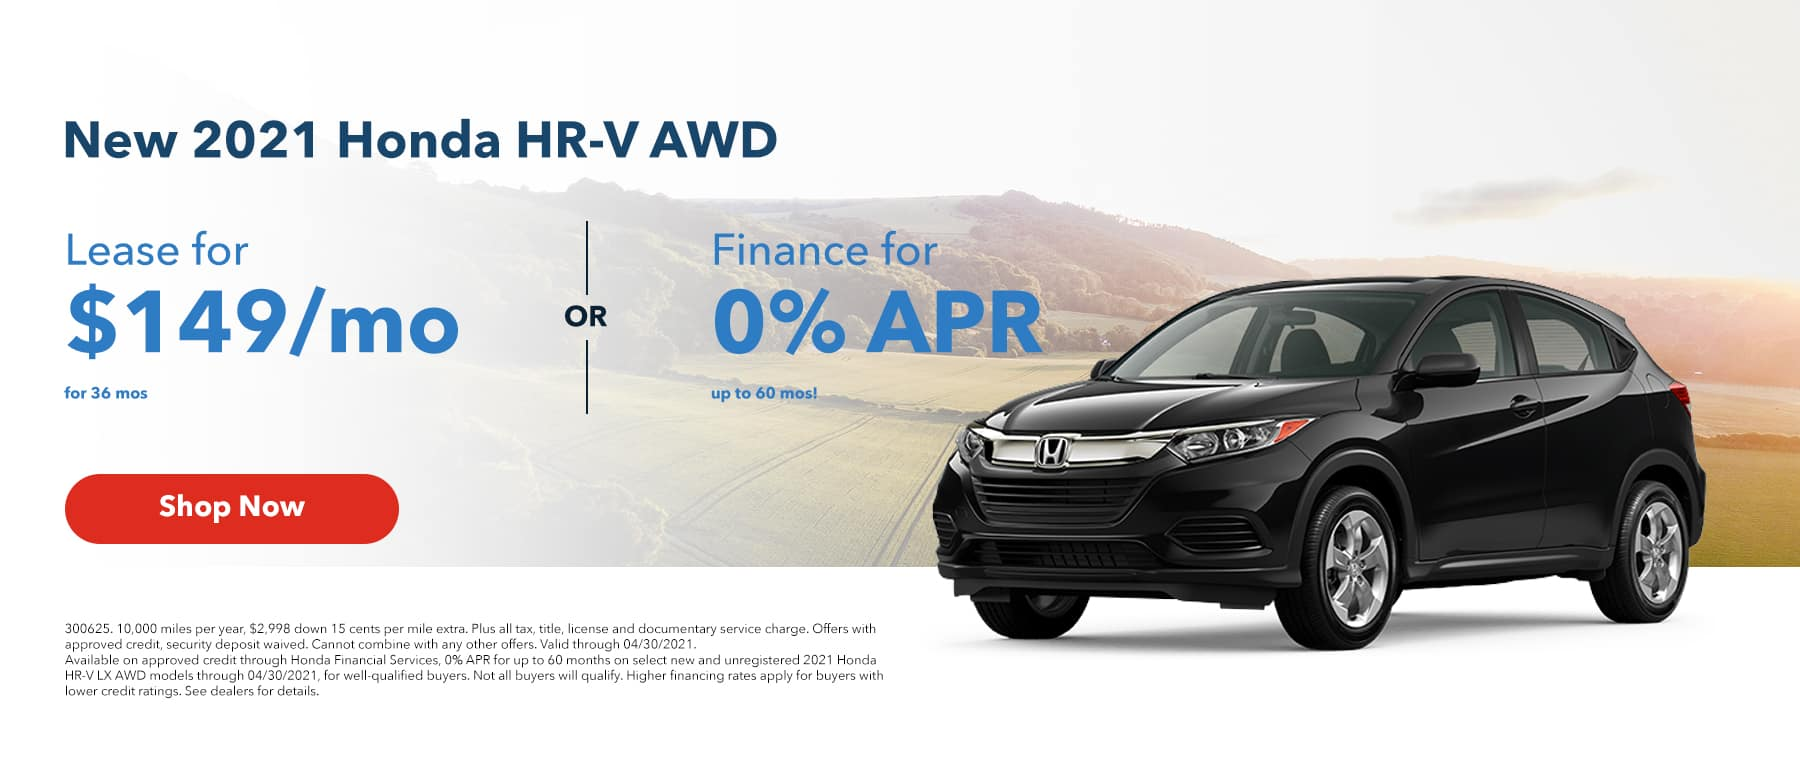 Lease a New 2021 Honda HR-V AWD for $149/mo for 36mos or Finance for 0% APR up to 60mos!